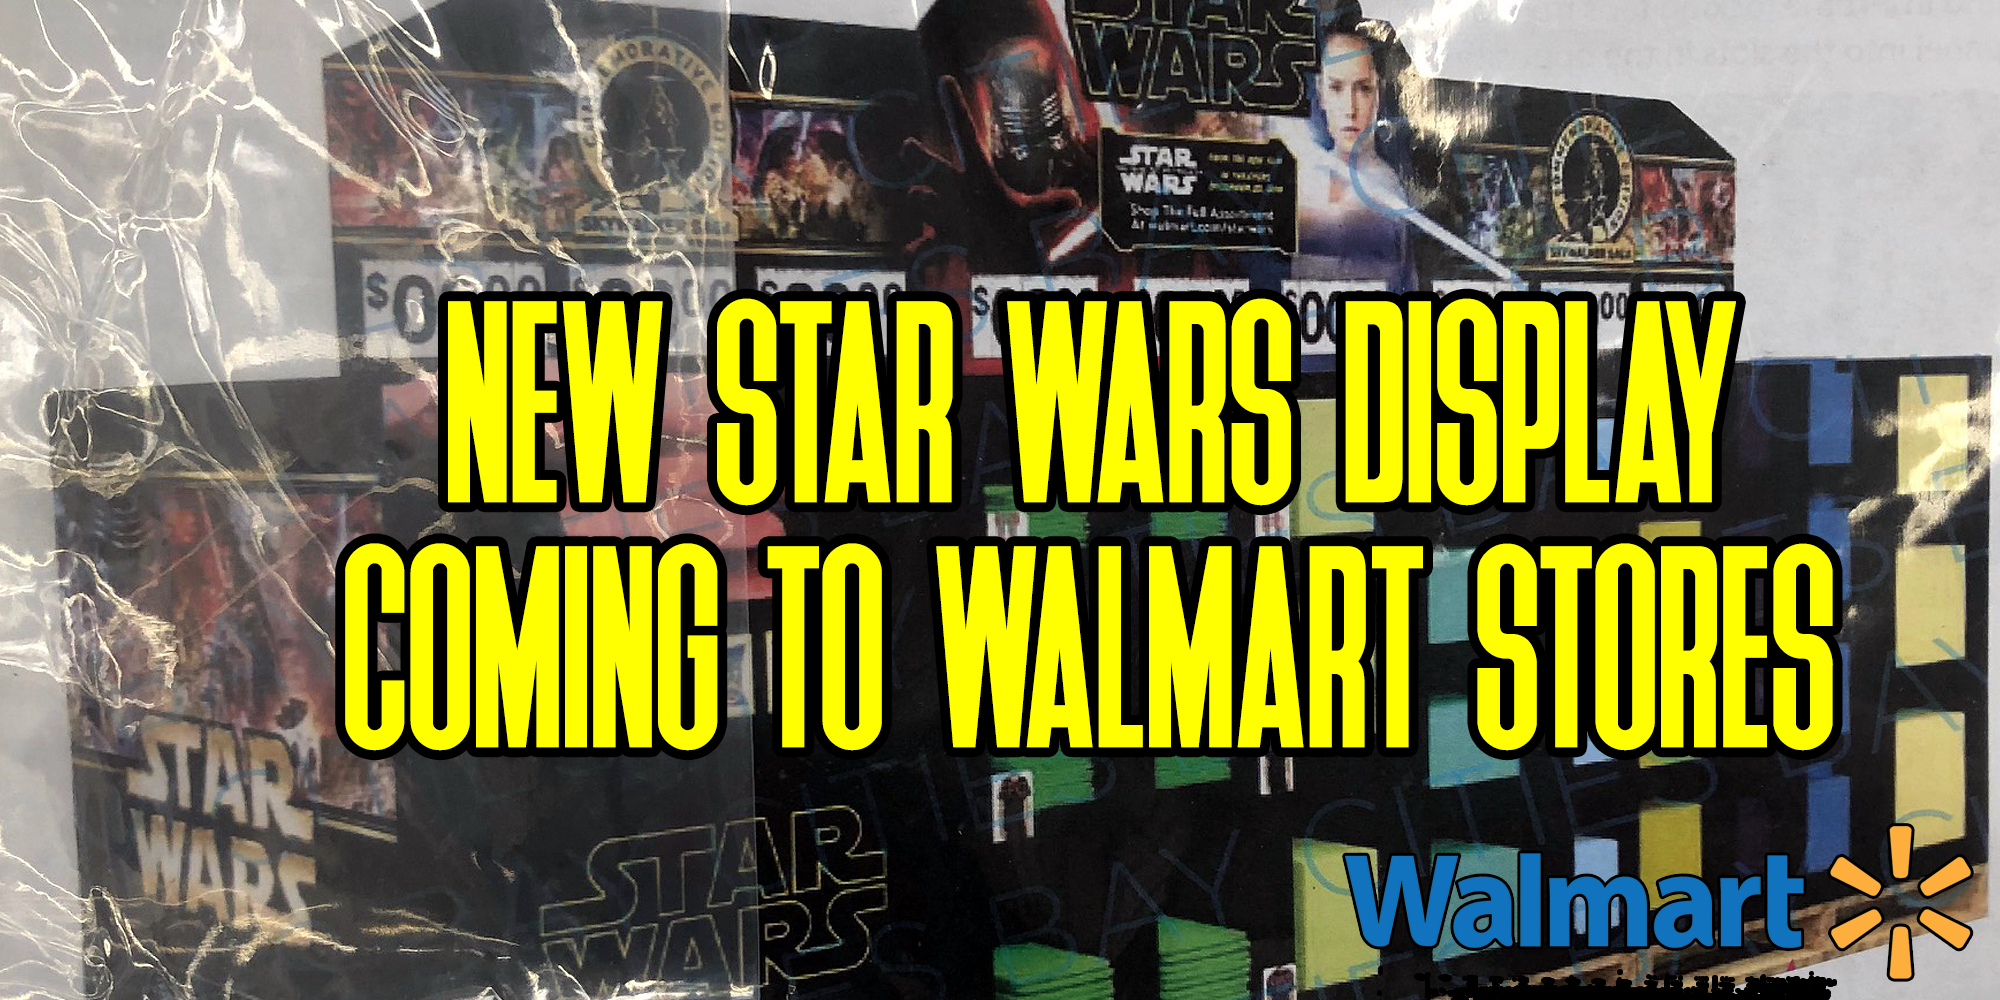 Star Wars @ Walmart Fall 2019